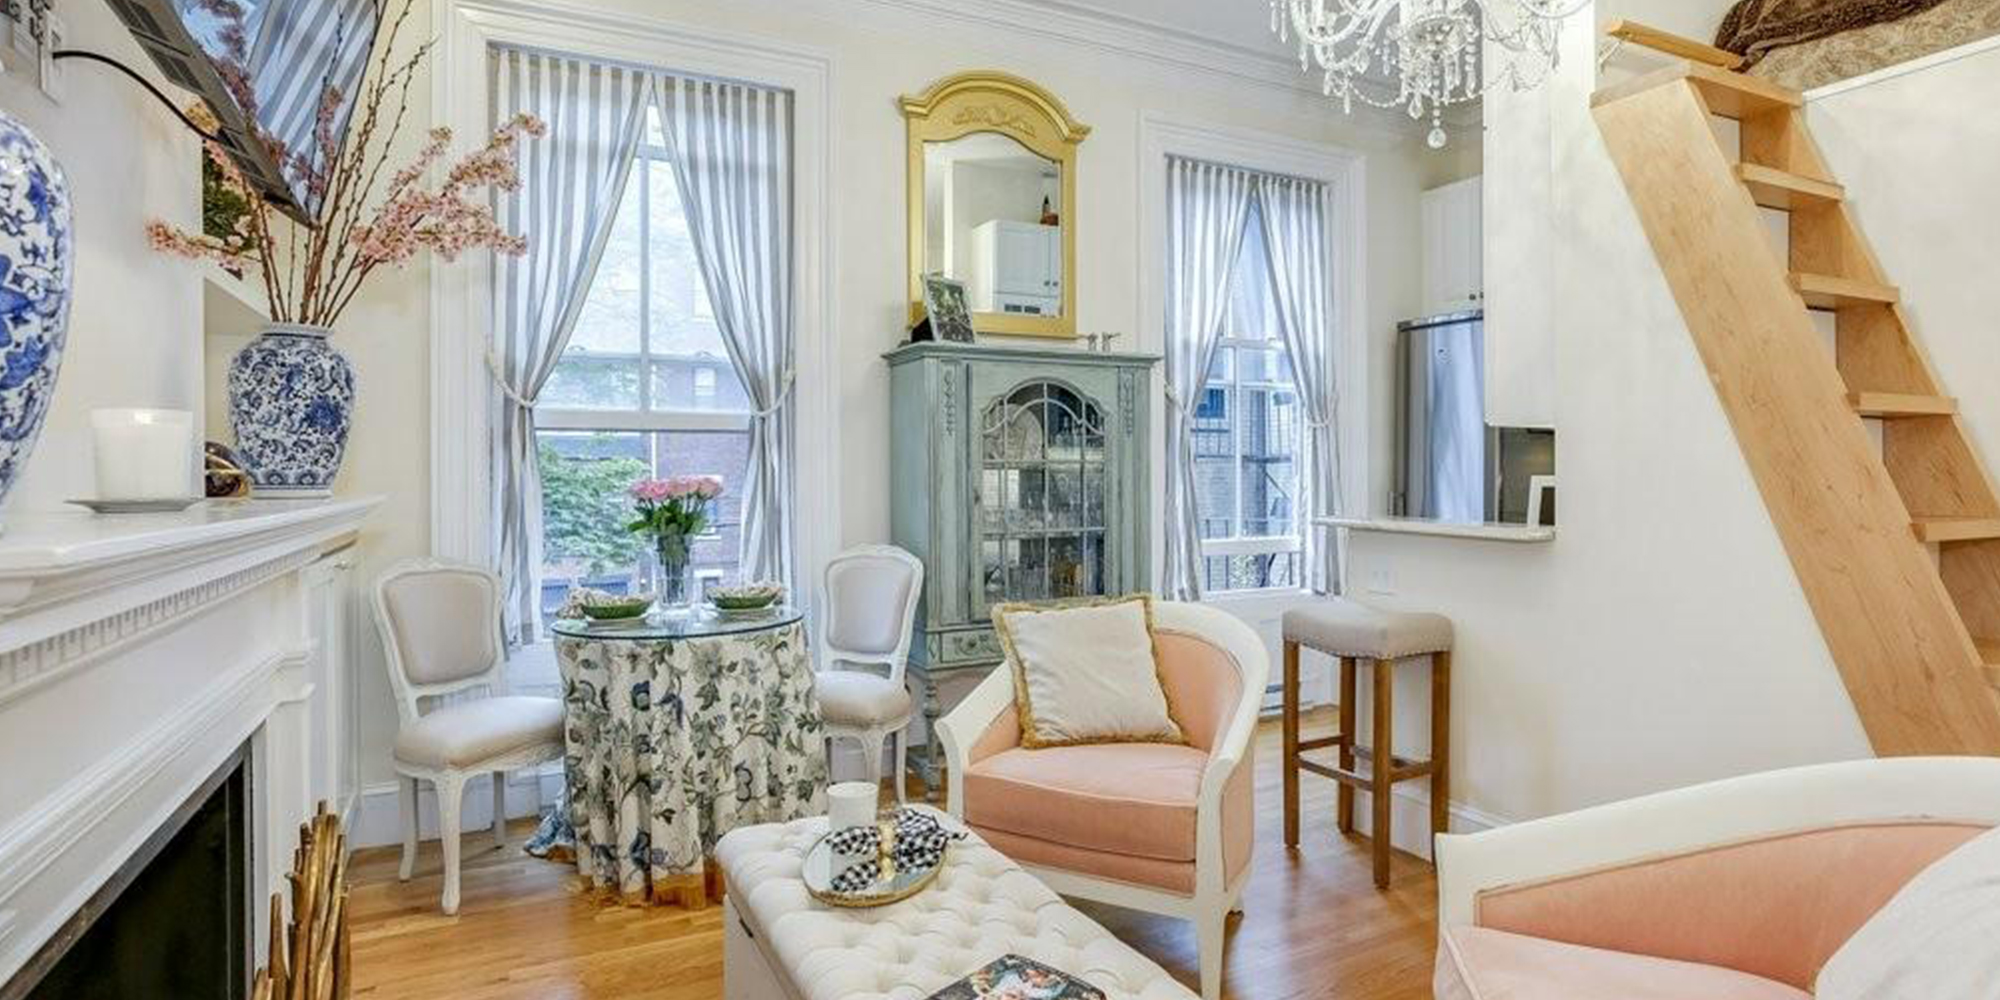 What $600,000 Buys You in Boston Right Now